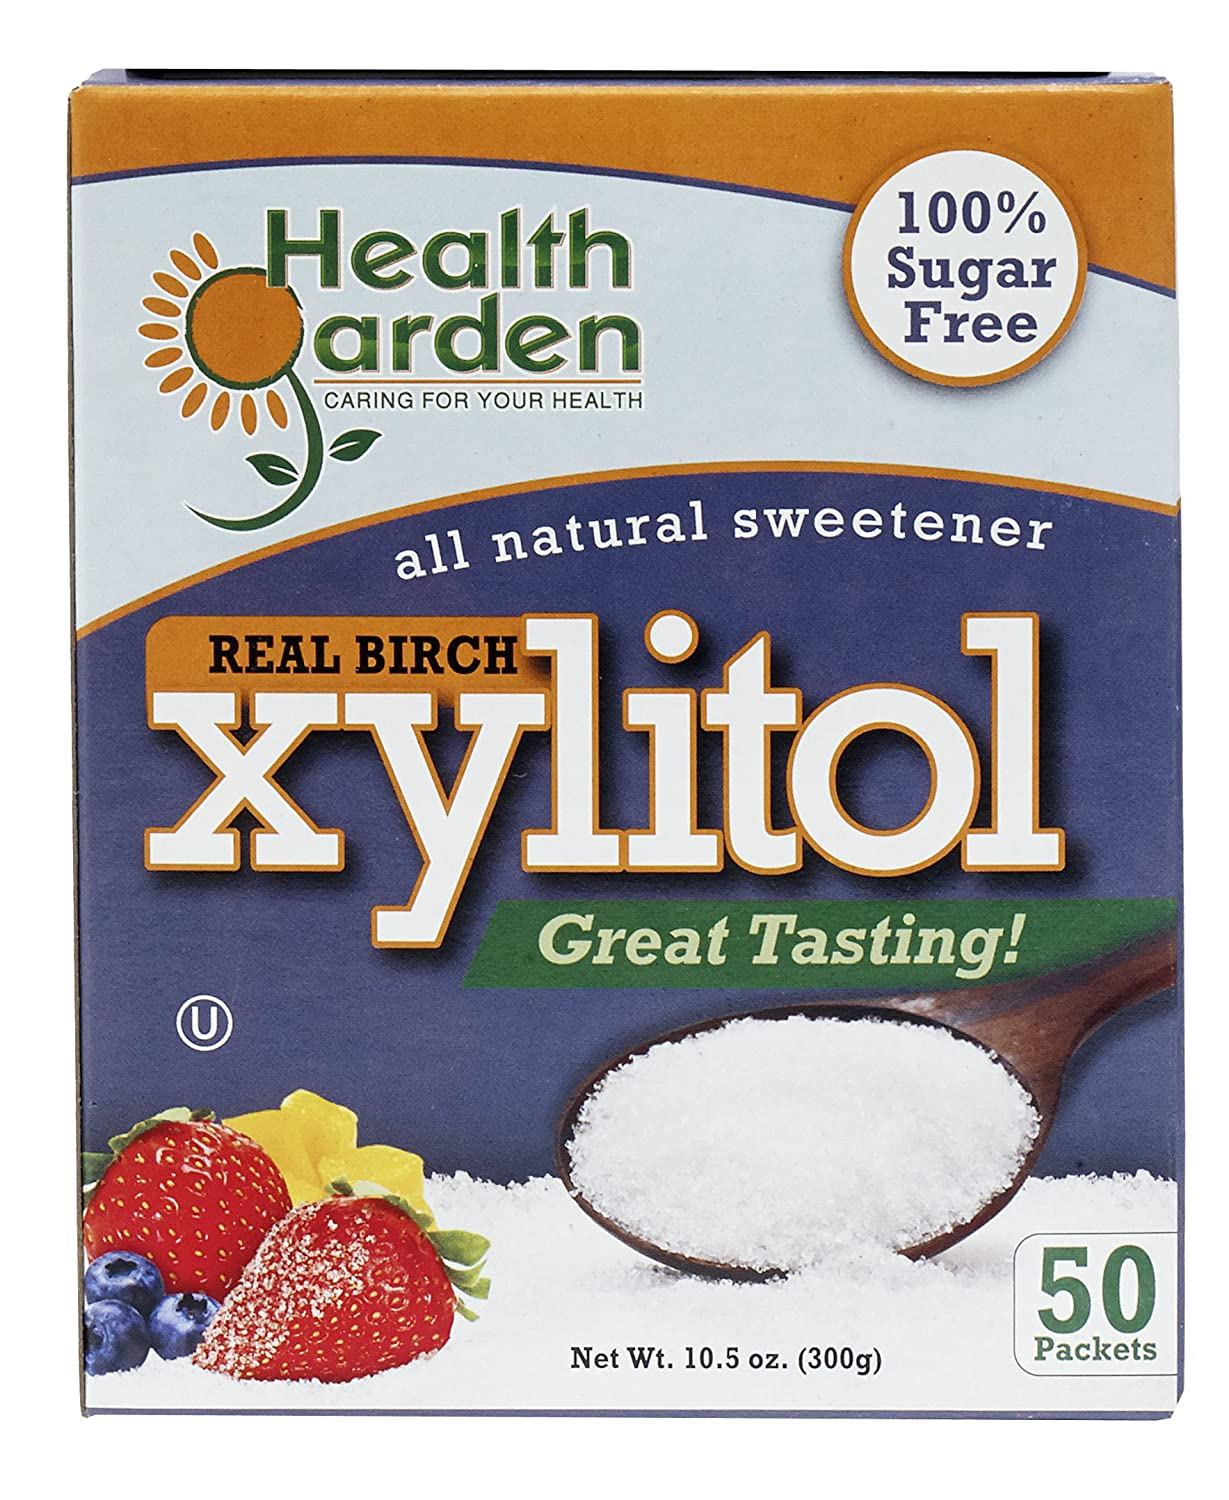 Health Garden Birch Xylitol Sweetener - Non GMO - Kosher - Made in the U.S.A. - Keto Friendly (50 Packets)